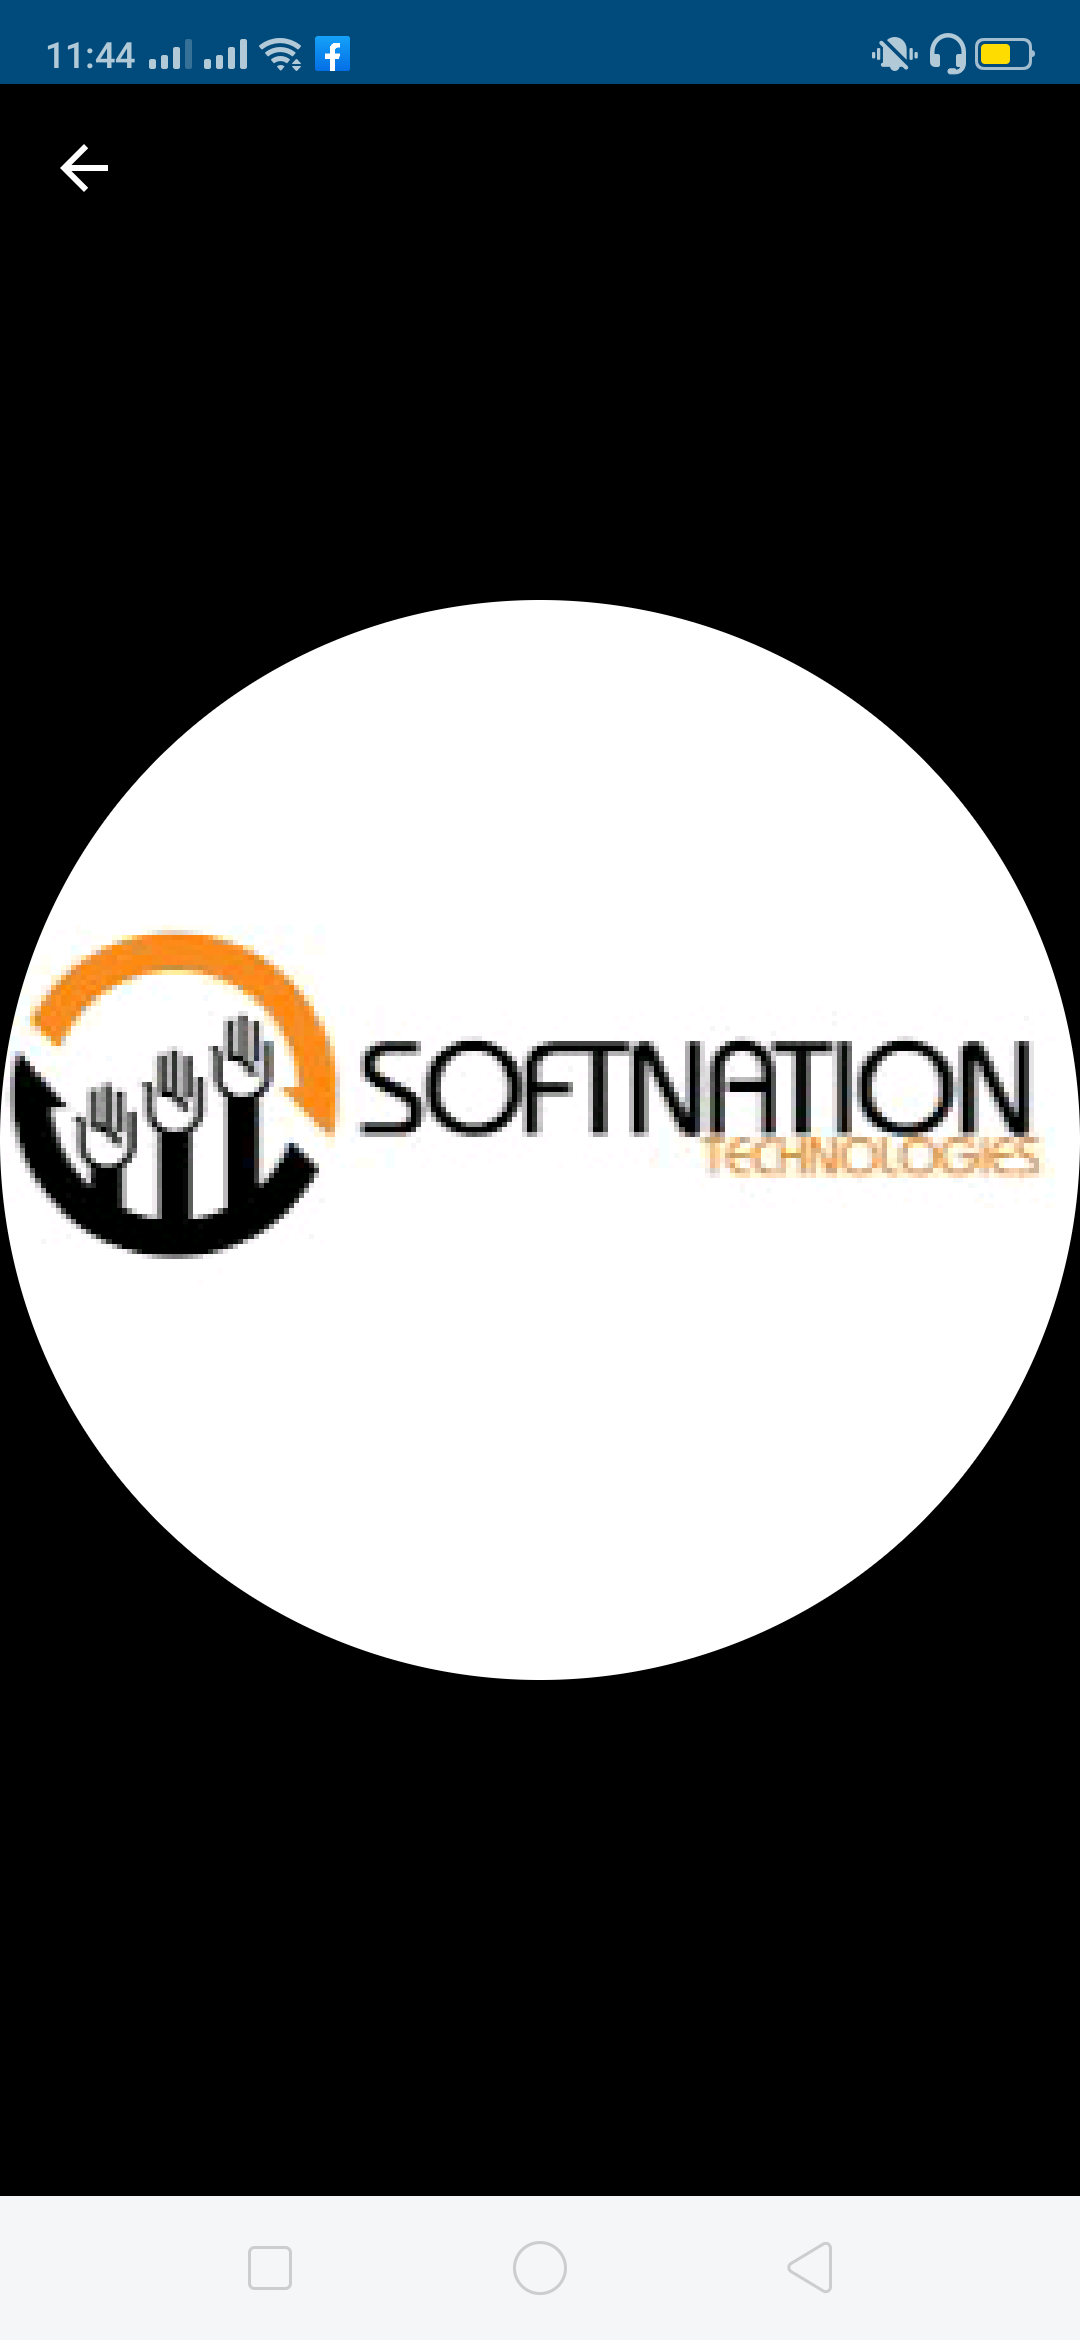 https://www.pakpositions.com/company/soft-nation-technologies